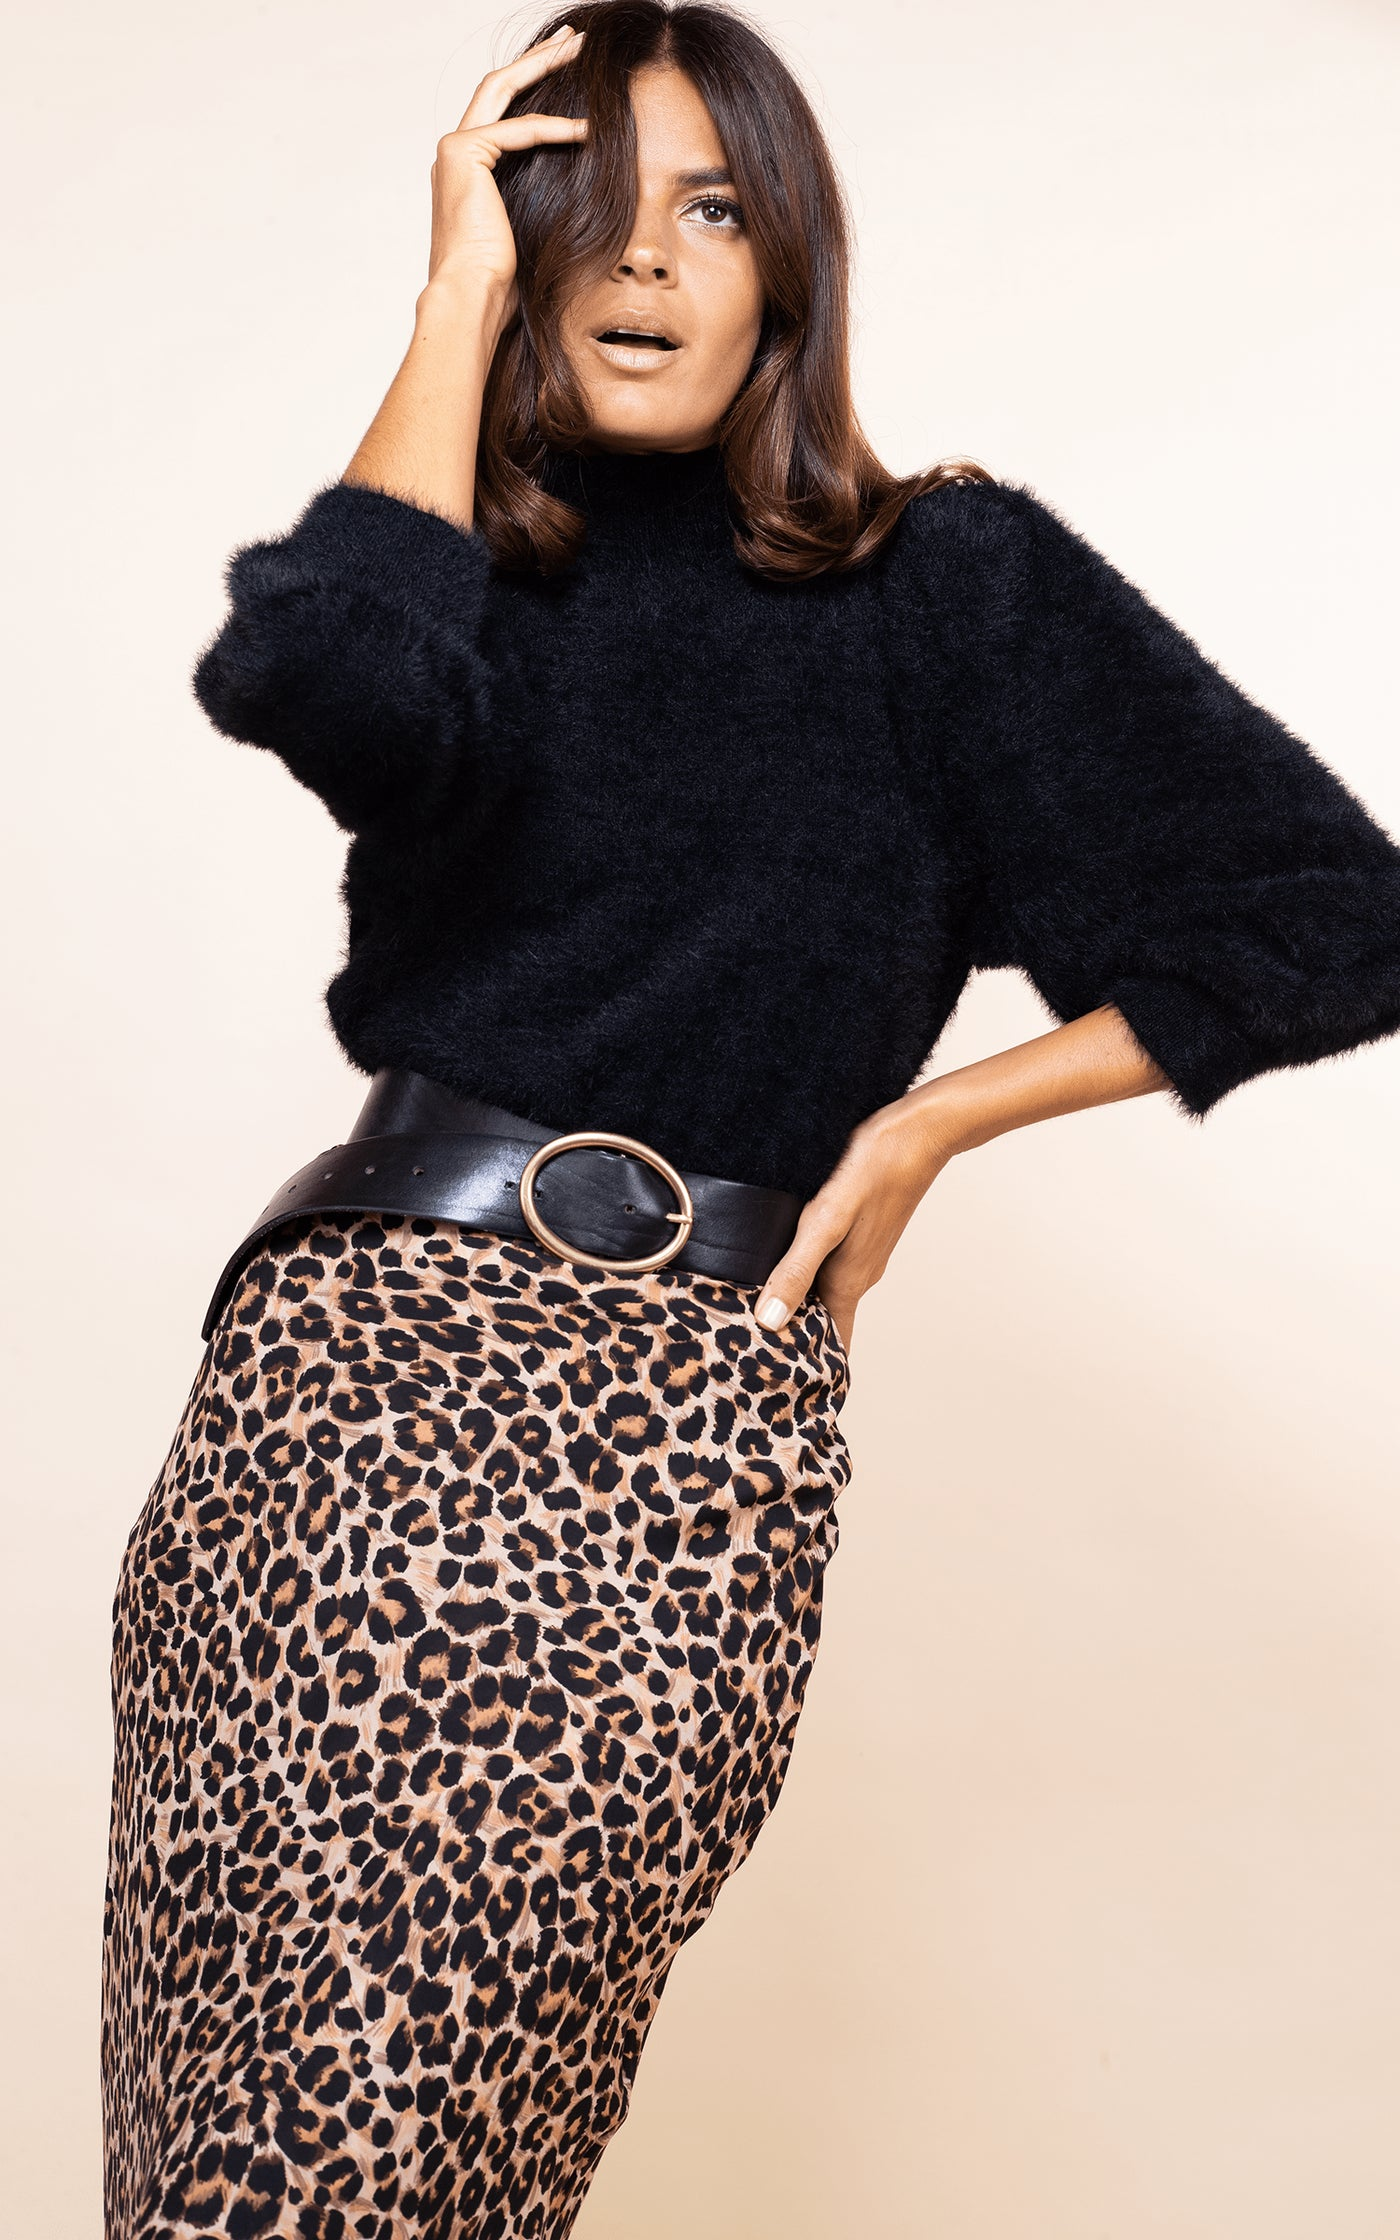 Close-up of Dancing Leopard model facing forward wearing Sophie Skirt in Rich Leopard print with black fluffy jumper